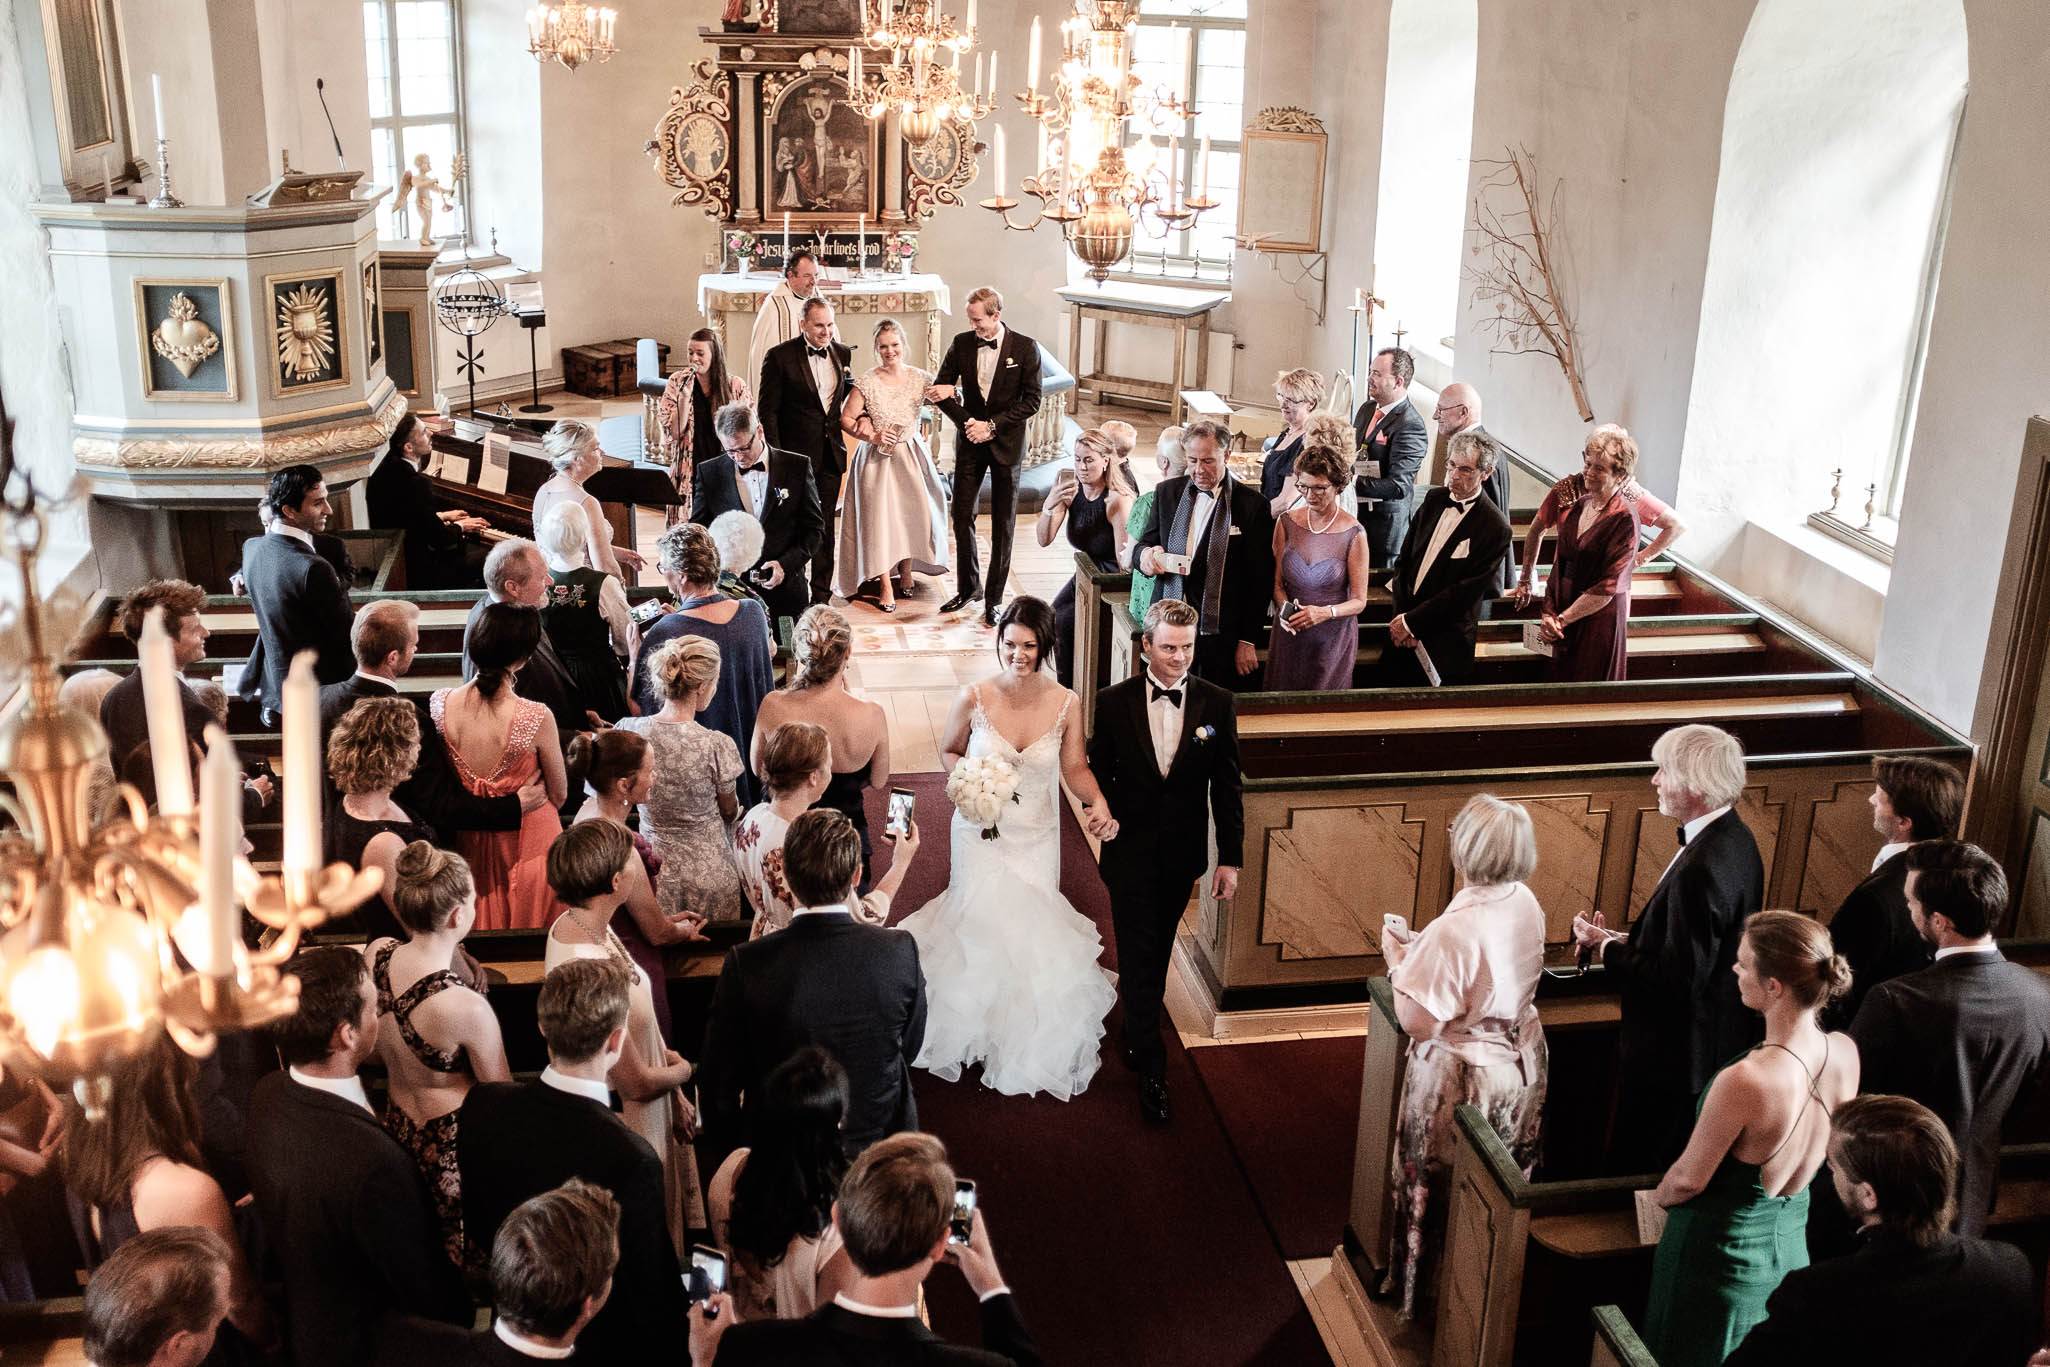 Click to enlarge image linnchristin-andreas-hallsnas-ottossonphoto-1018.jpg